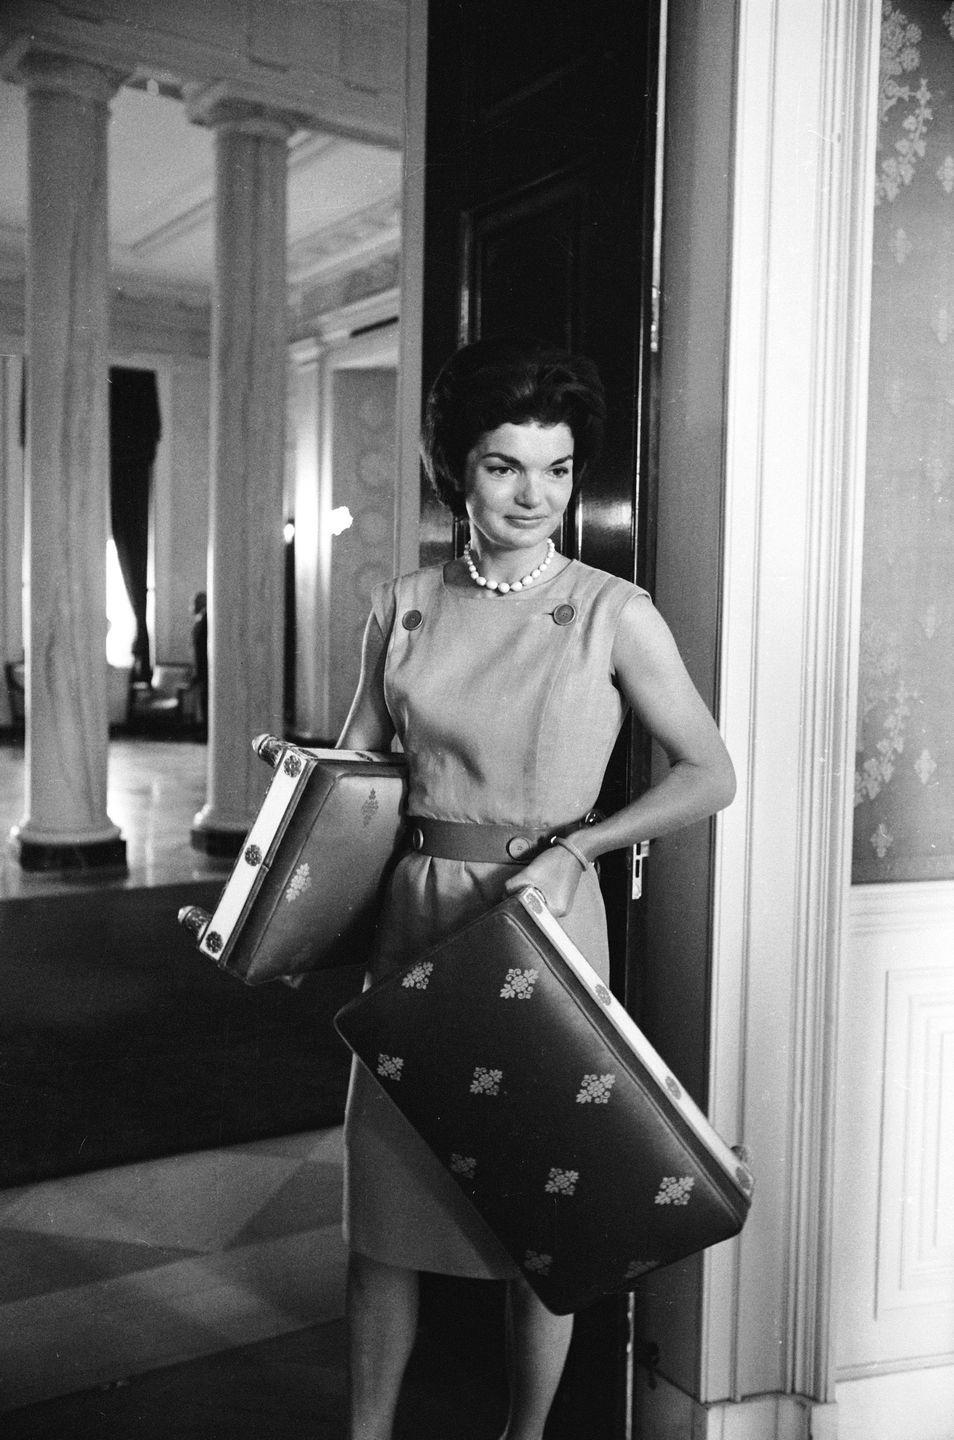 "<p>Shortly after moving into the White House, Jackie embarked on a <a href=""https://www.jfklibrary.org/learn/about-jfk/jfk-in-history/the-white-house-restoration"" rel=""nofollow noopener"" target=""_blank"" data-ylk=""slk:complete restoration"" class=""link rapid-noclick-resp"">complete restoration</a> of the historic residence. Here, during a meeting of the White House restoration project, Jackie moves two antique footstools dating all the way back to the Teddy Roosevelt presidency. </p>"